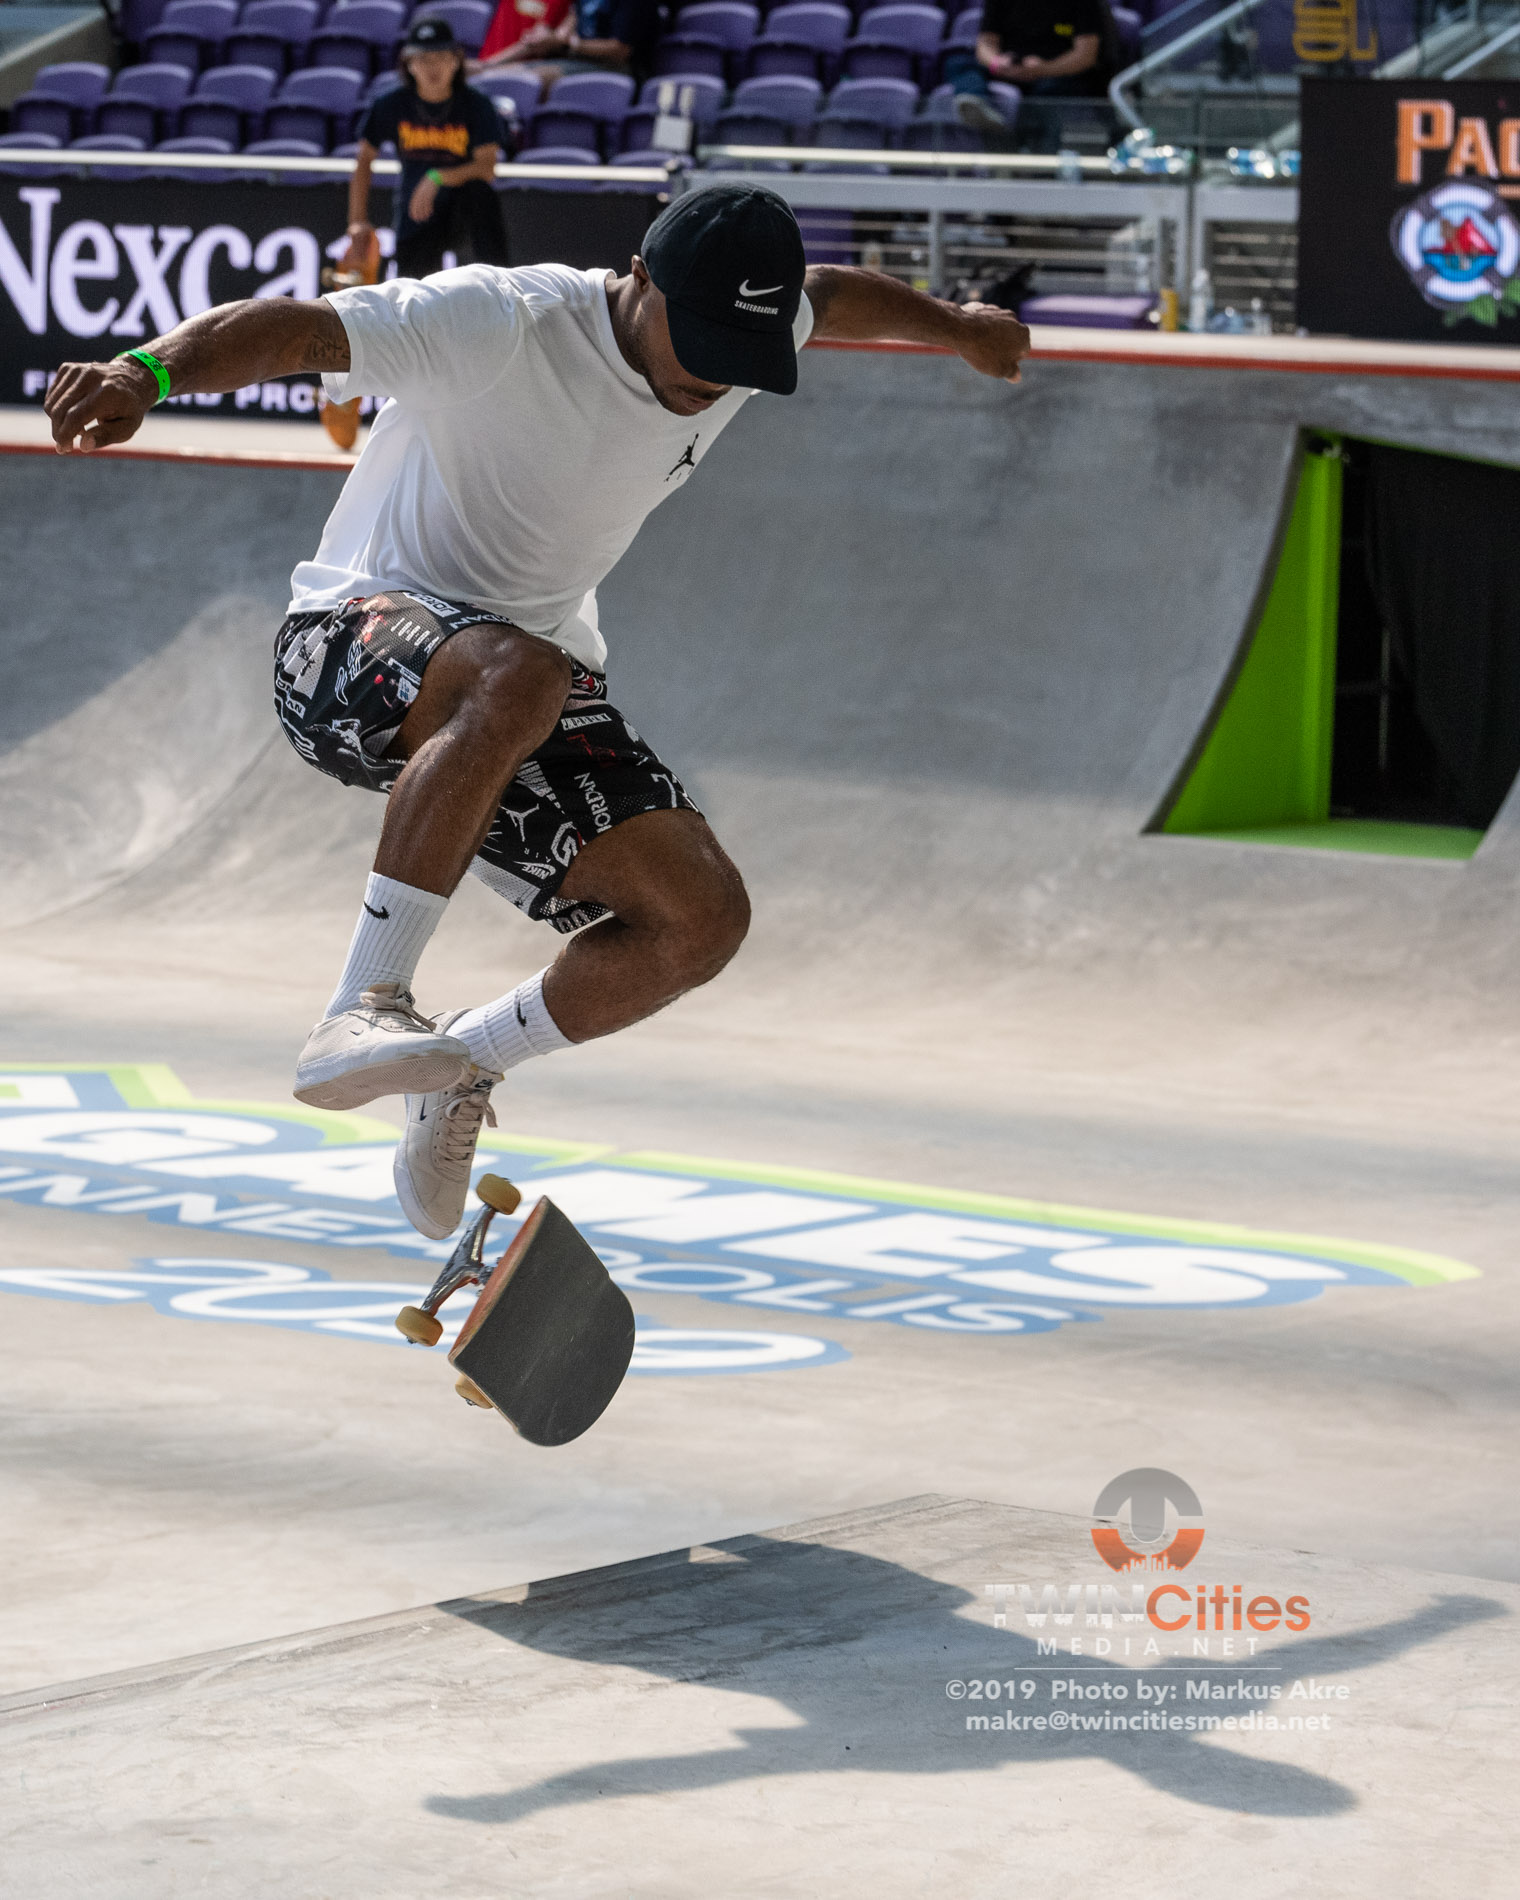 2019-X-Games-Day-1-Skate-Elims-7